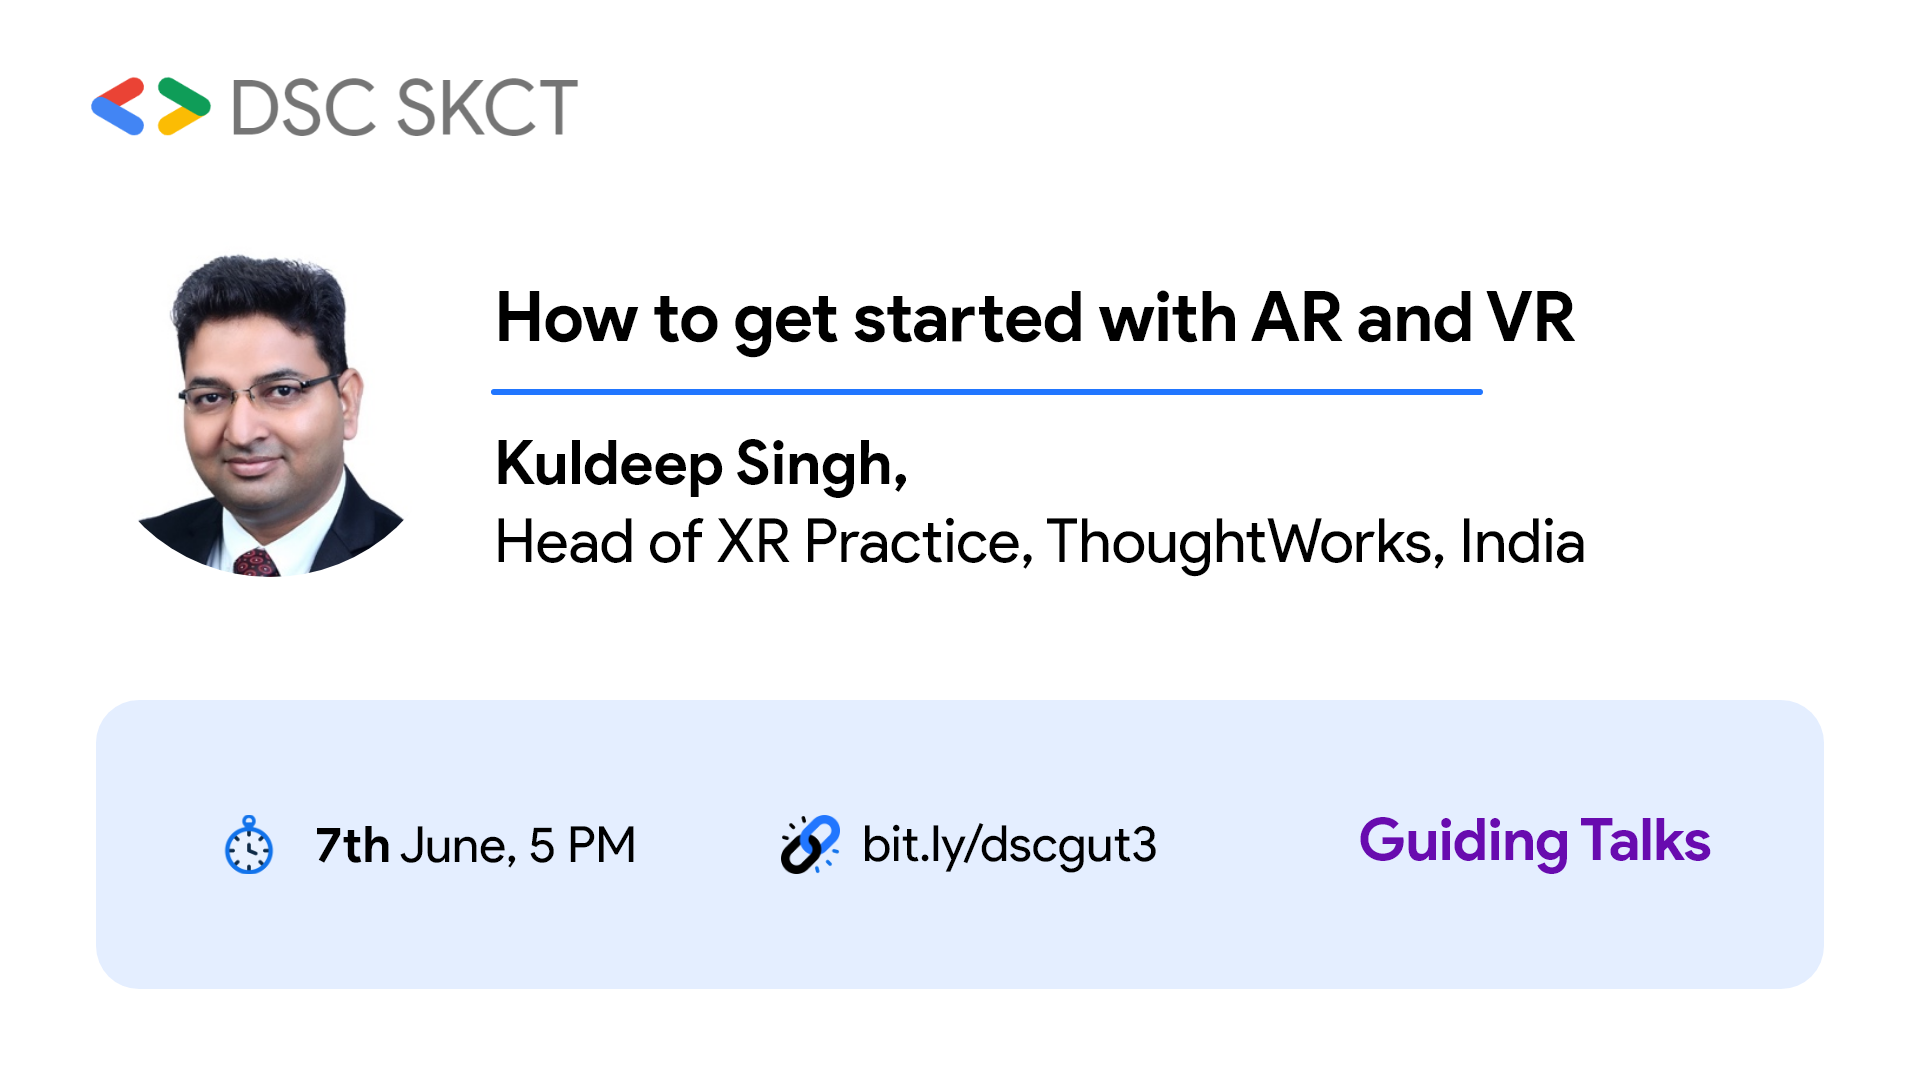 image from Speaker - Google DSC - How to get started with AR VR?